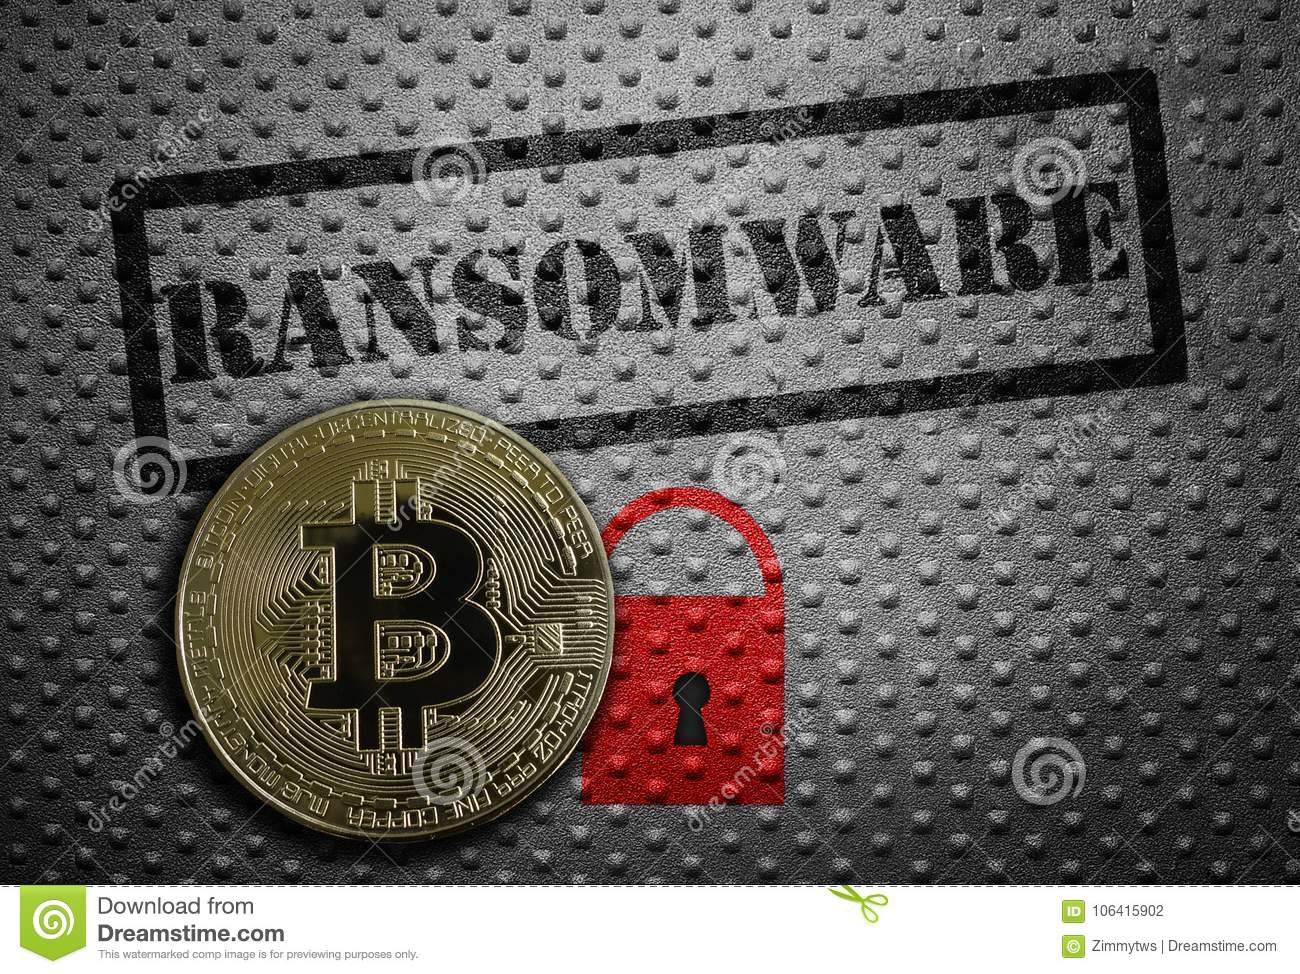 Ransomware bitcoin concept stock photo. Image of illegal - 106415902